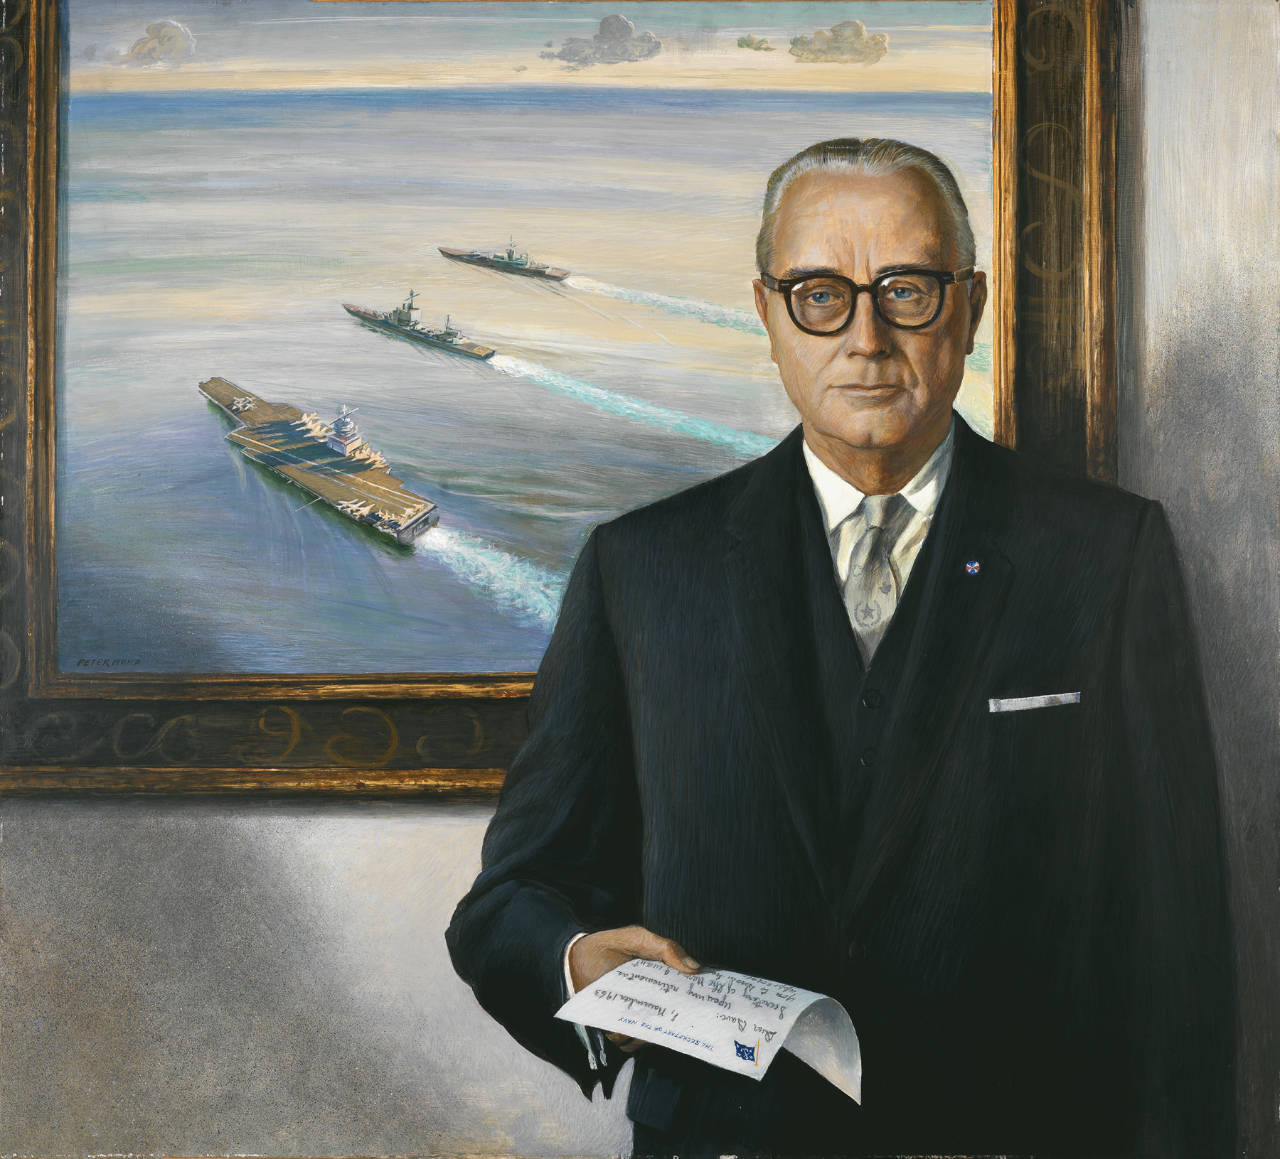 Portrait of Secretary of the Navy Frederick Herman Korth